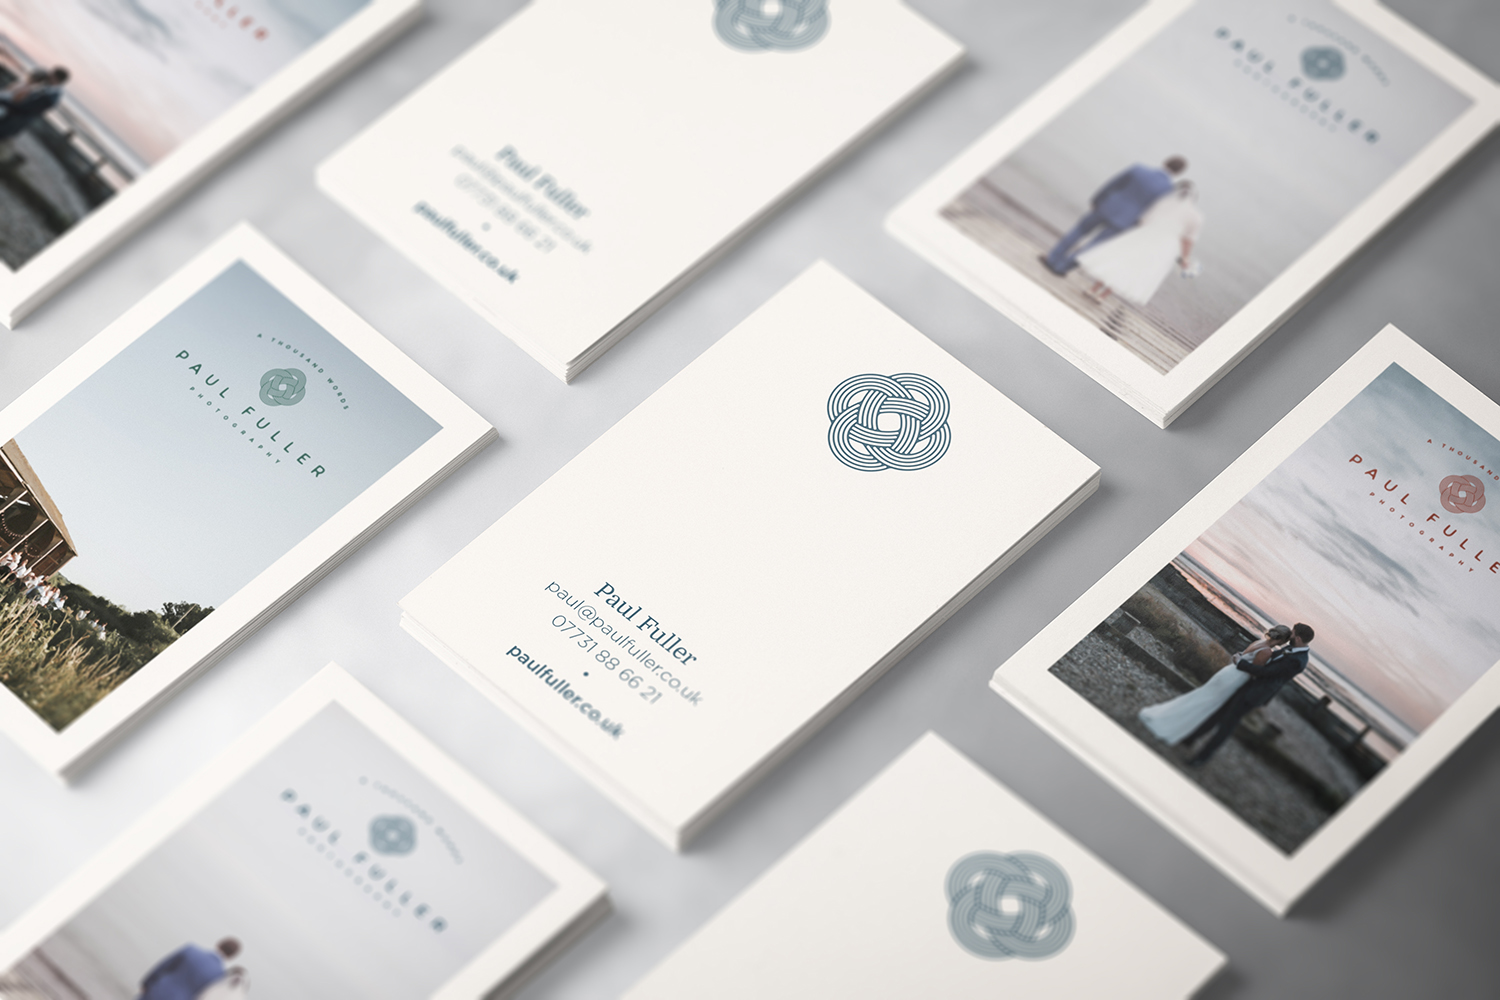 Paul Fuller kent wedding photographer branding by Ditto Creative, branding agency for small businesses in Kent